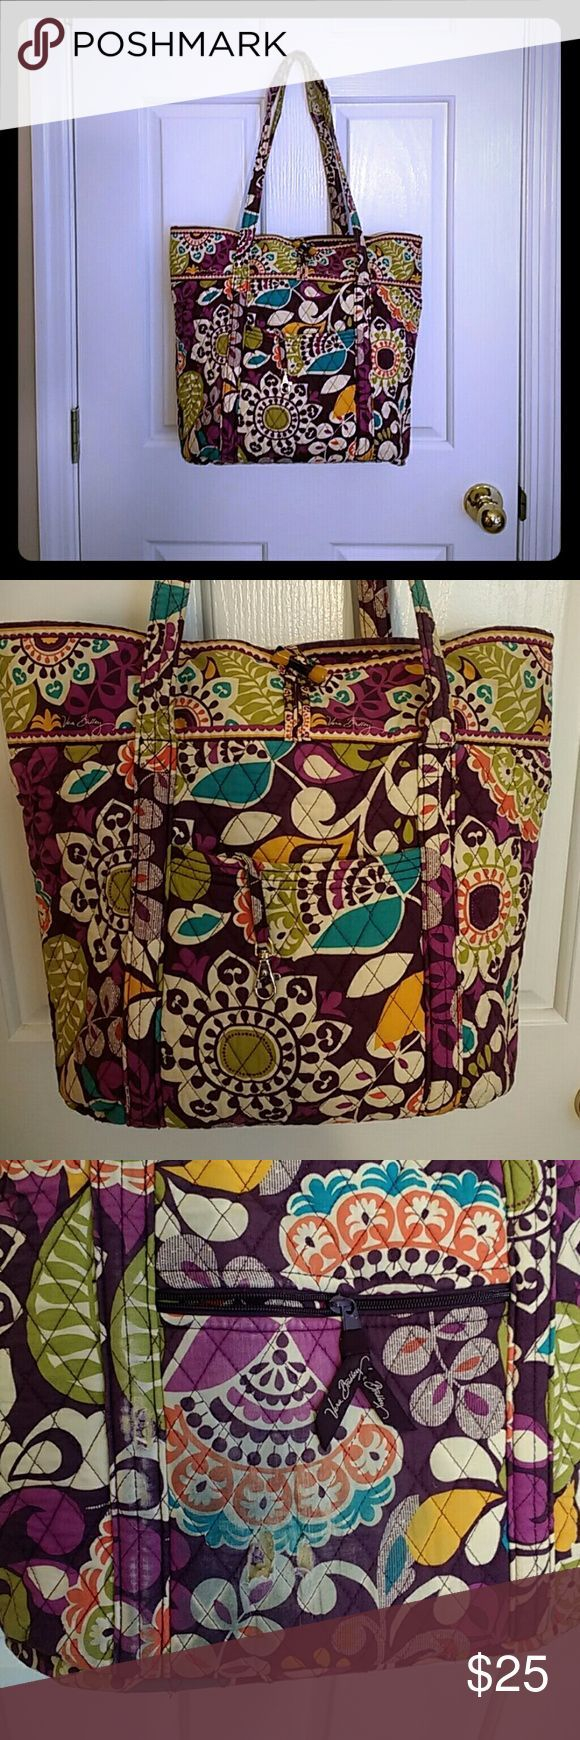 Vera Bradley Large Plum Crazy Tote FREE ID case! This is a Vera Bradley Large tote in the plum crazy retired pattern. Comes with free matching ID holder. These bags make perfect book bags and i absolutely adore them! I'm getting rid of some of my older patterns to make room for new ones. This bag has been professionally cleaned and I photoed the wear on the back side, straps and ID holder. The colors are still insanely vibrant which isn't common on used Veras. Comment with questions. I&#